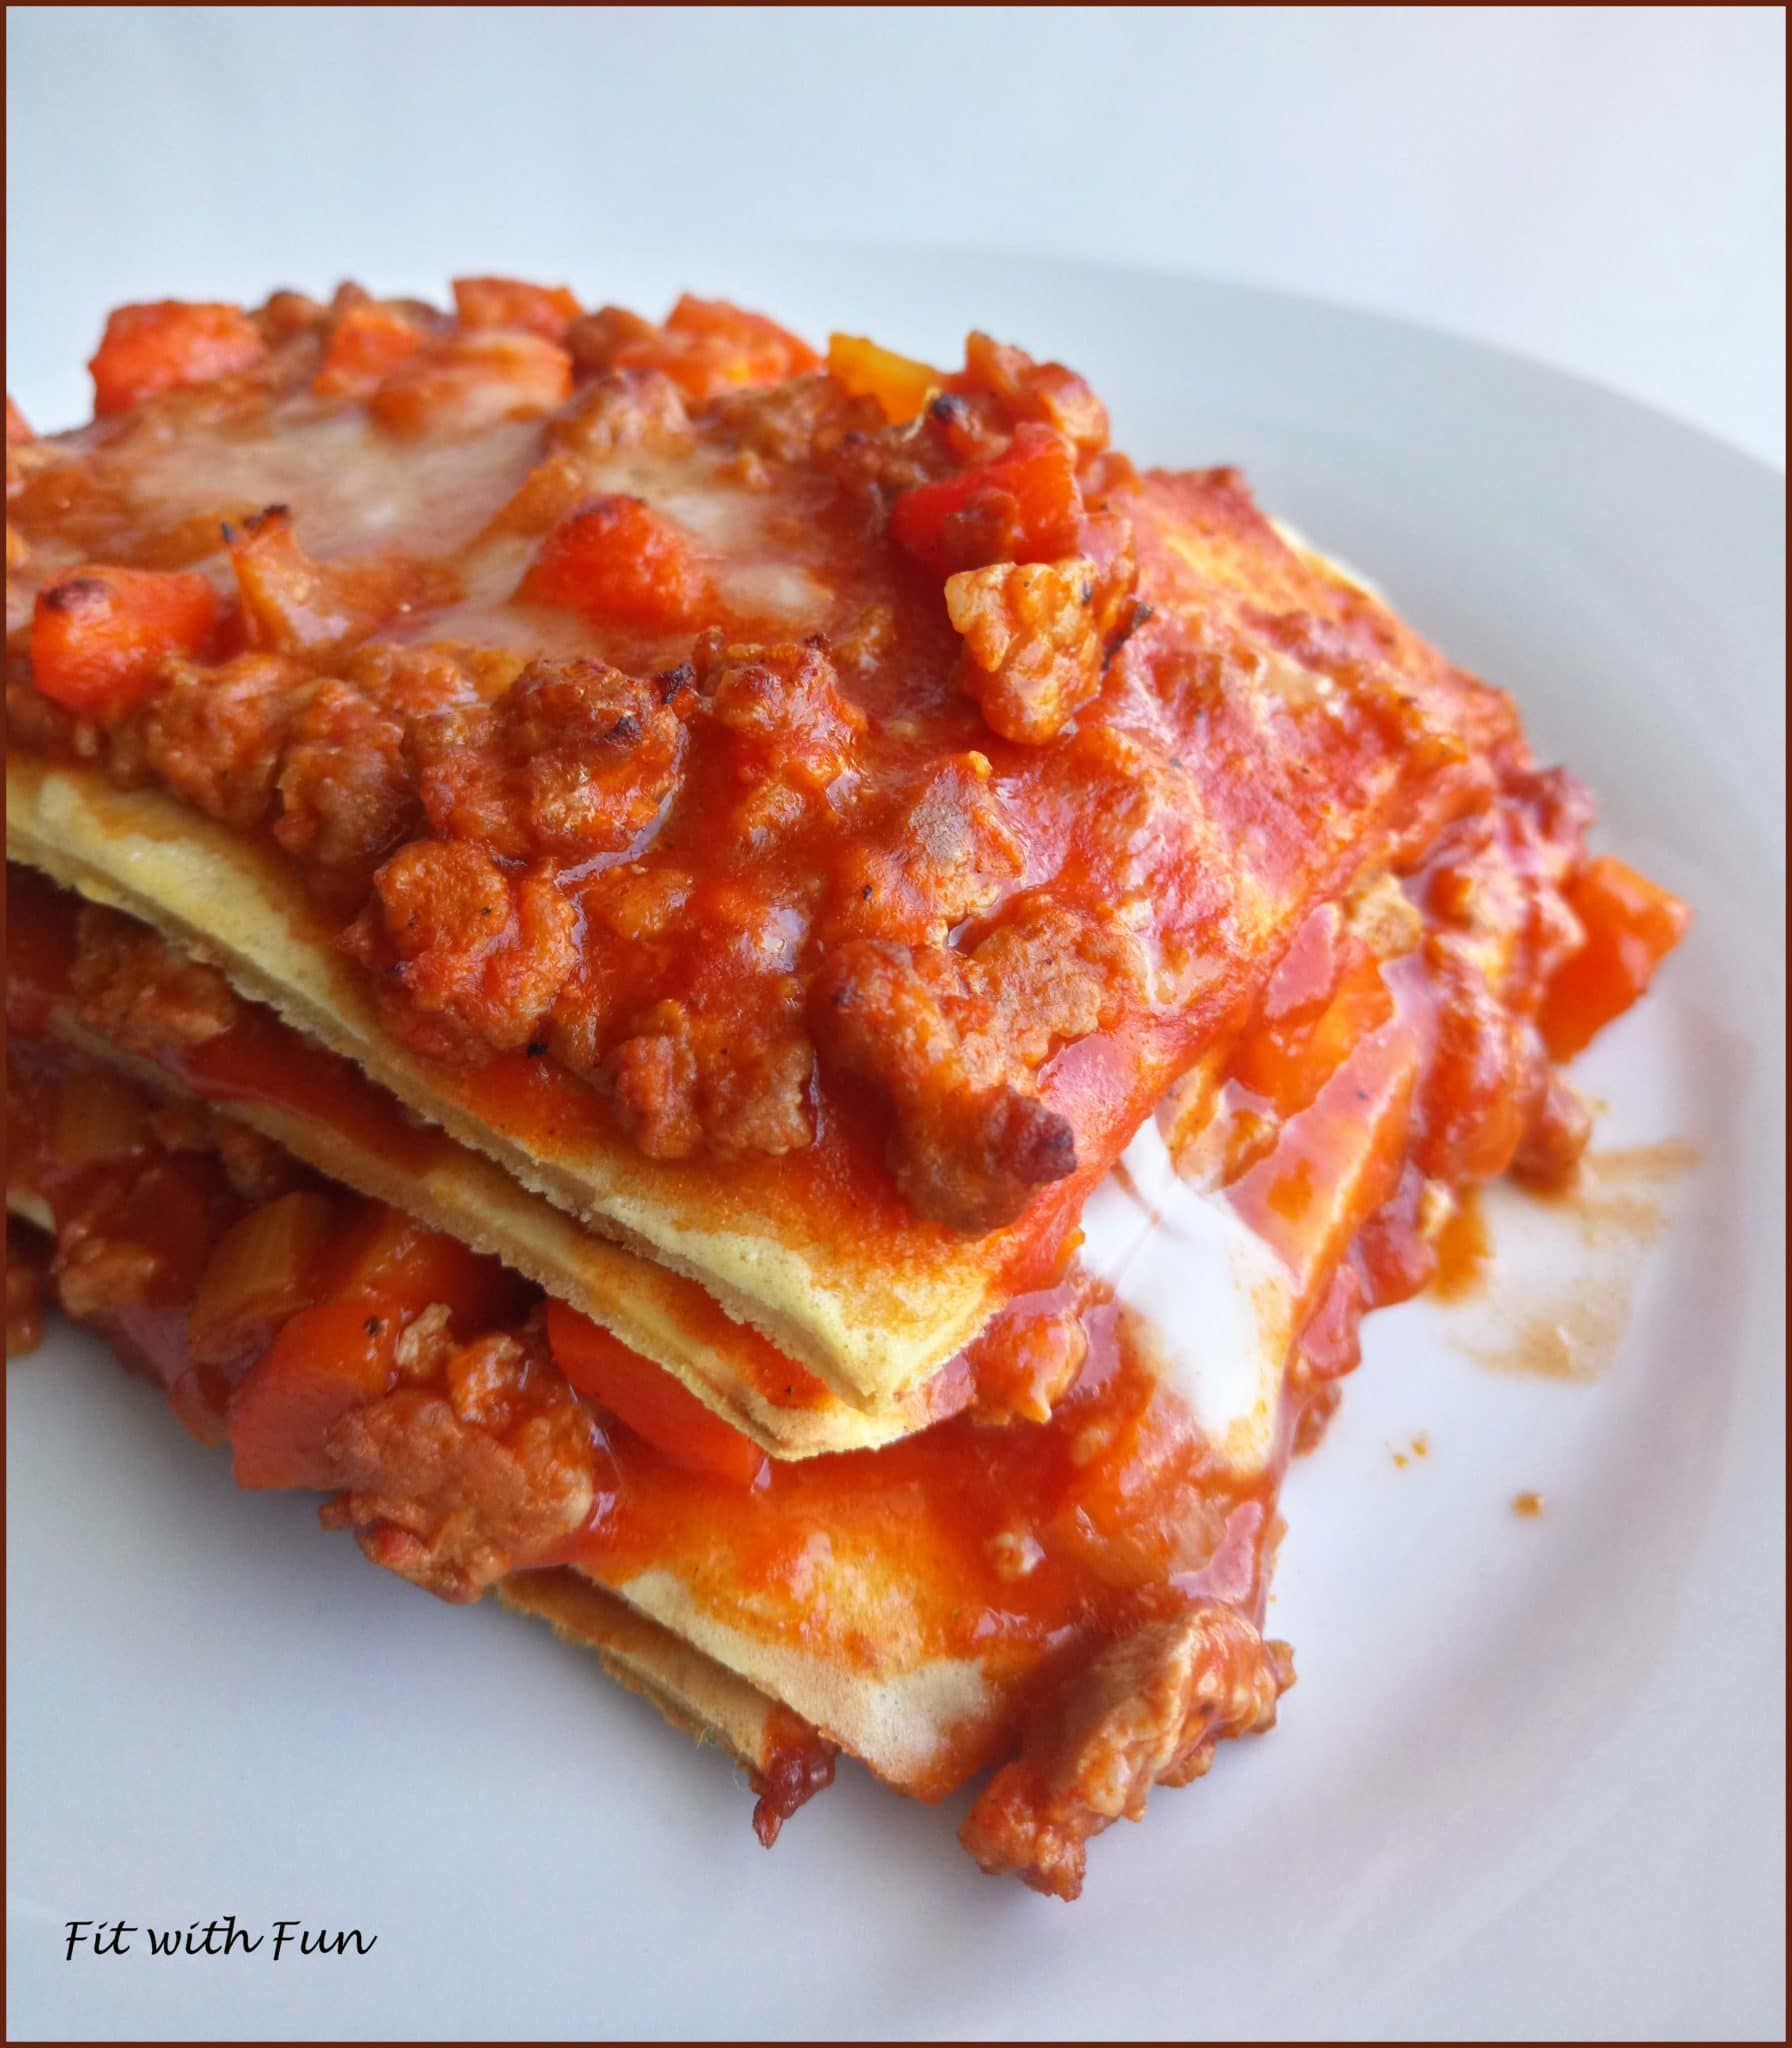 Lasagna Fit Low Carb Proteica e Gluten Free